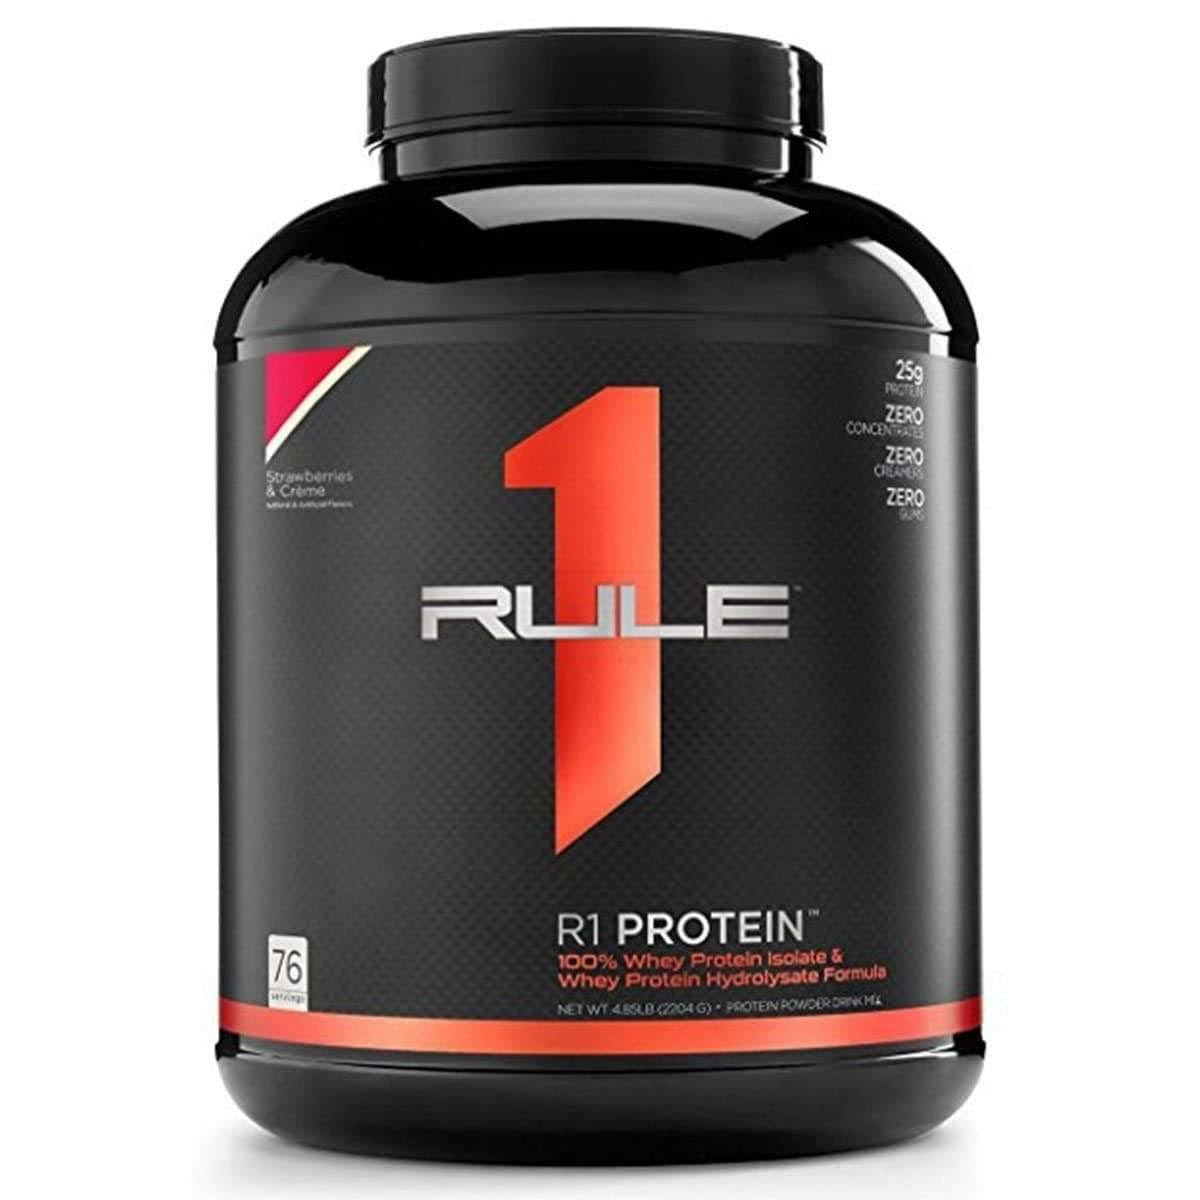 Rule 1 Whey Protein Isolate Dietary Supplement - Chocolate Fudge, 76 Servings